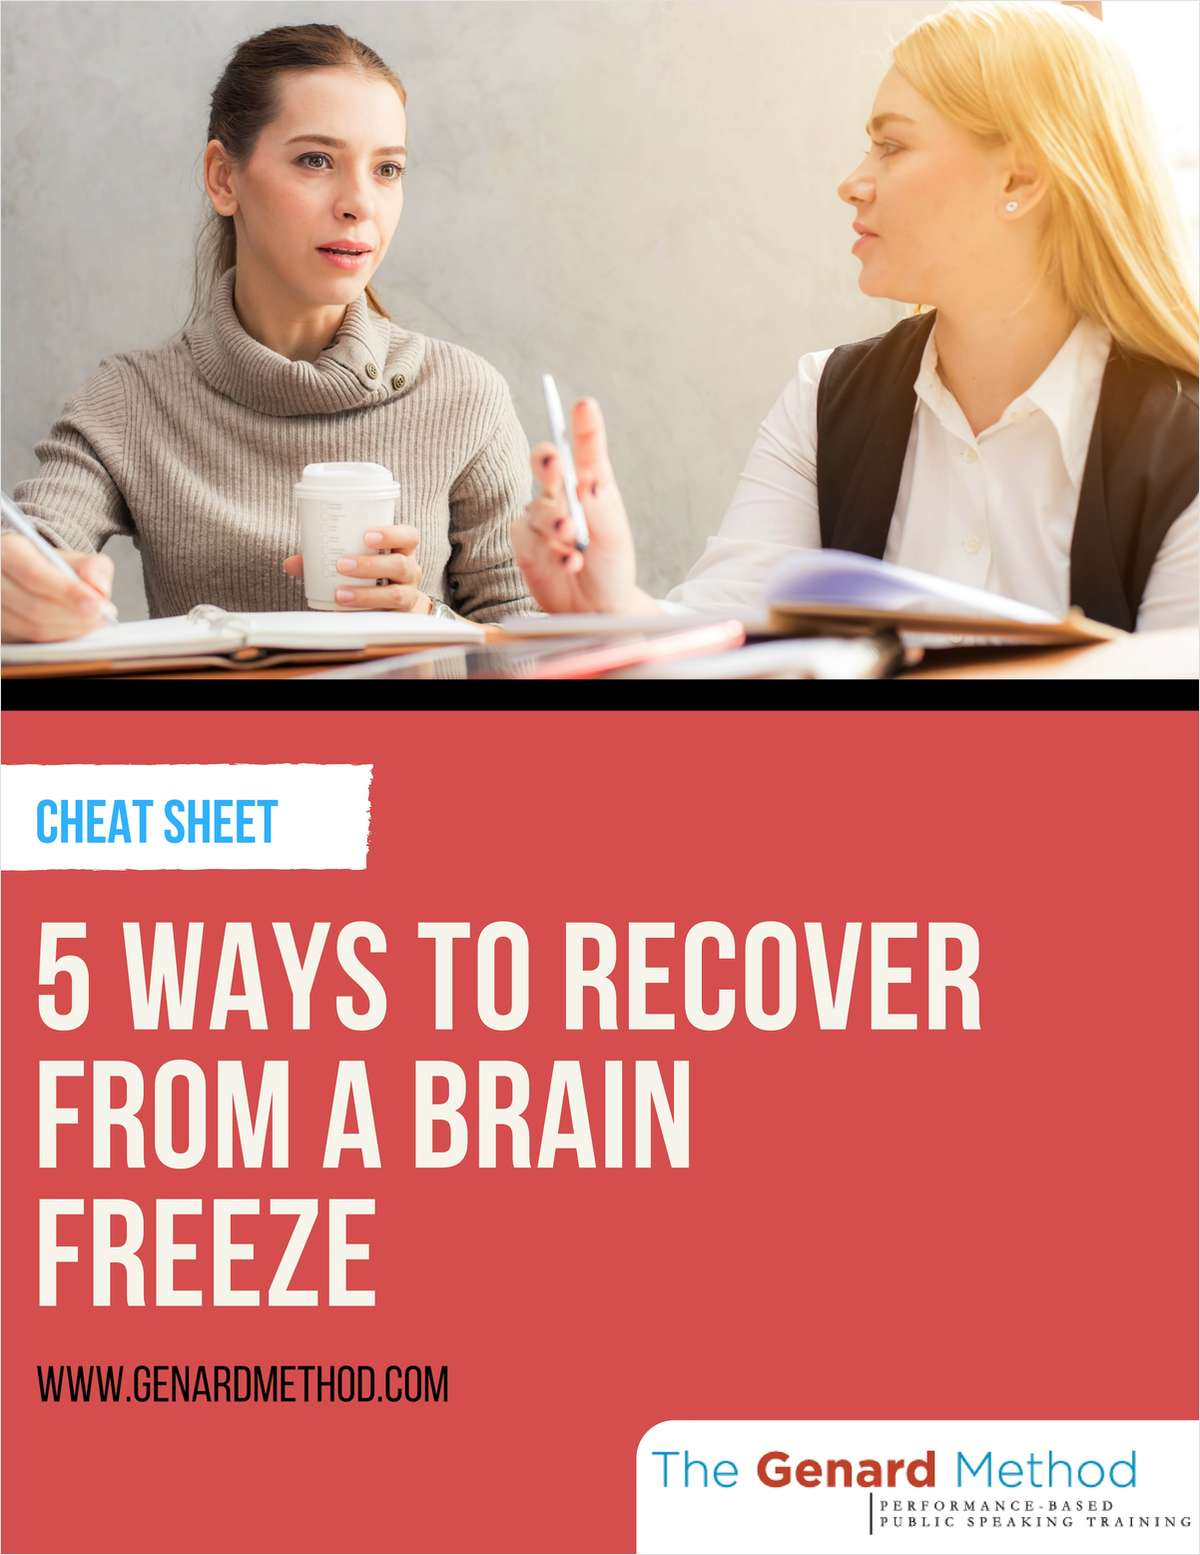 5 Ways to Recover from a Brain Freeze